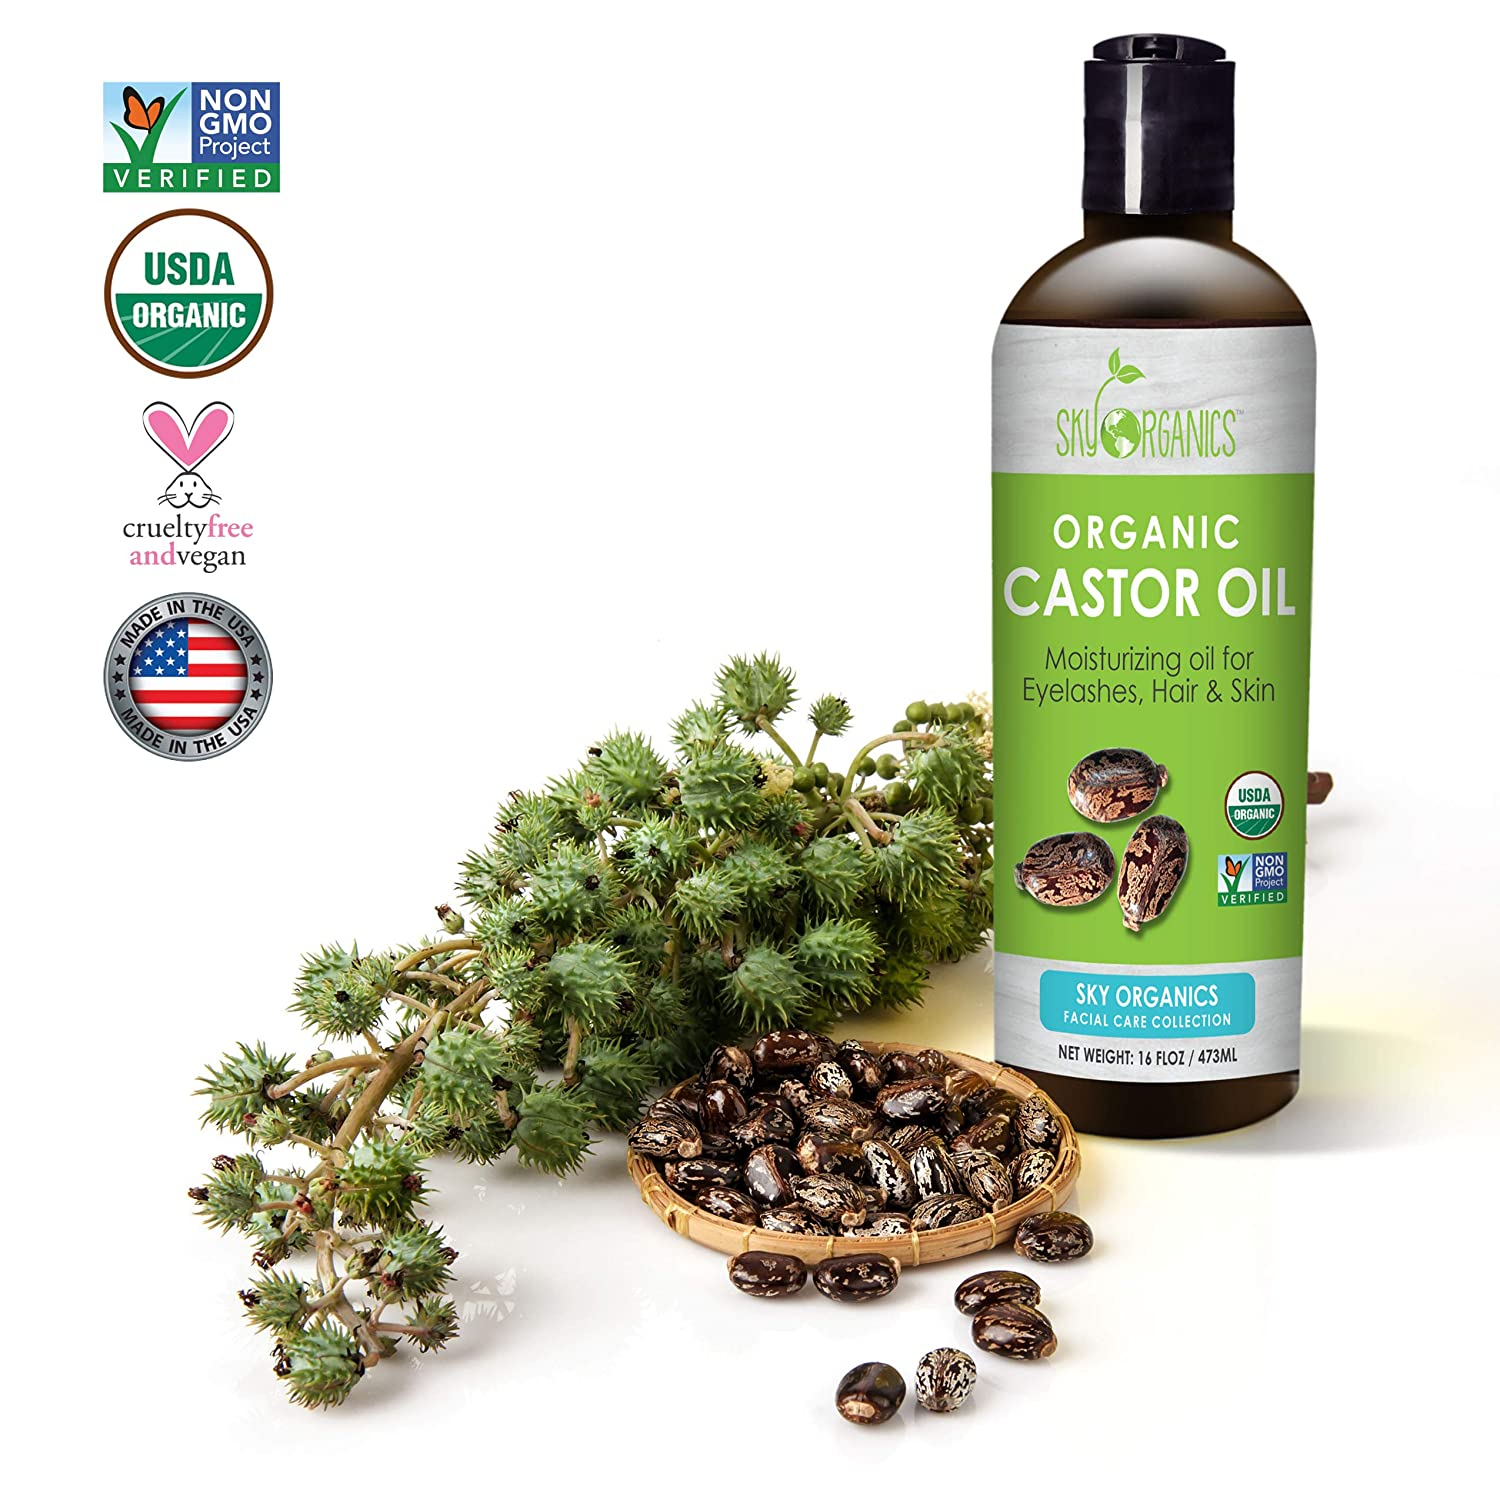 Castor Oil USDA Organic Cold-Pressed 100% Pure, Hexane-Free Castor Oil - Moisturizing & Healing, For Dry Skin, Hair Growth - For Skin, Hair Care, Eyelashes - Caster Oil By Sky Organics, 16oz (1 Pack)